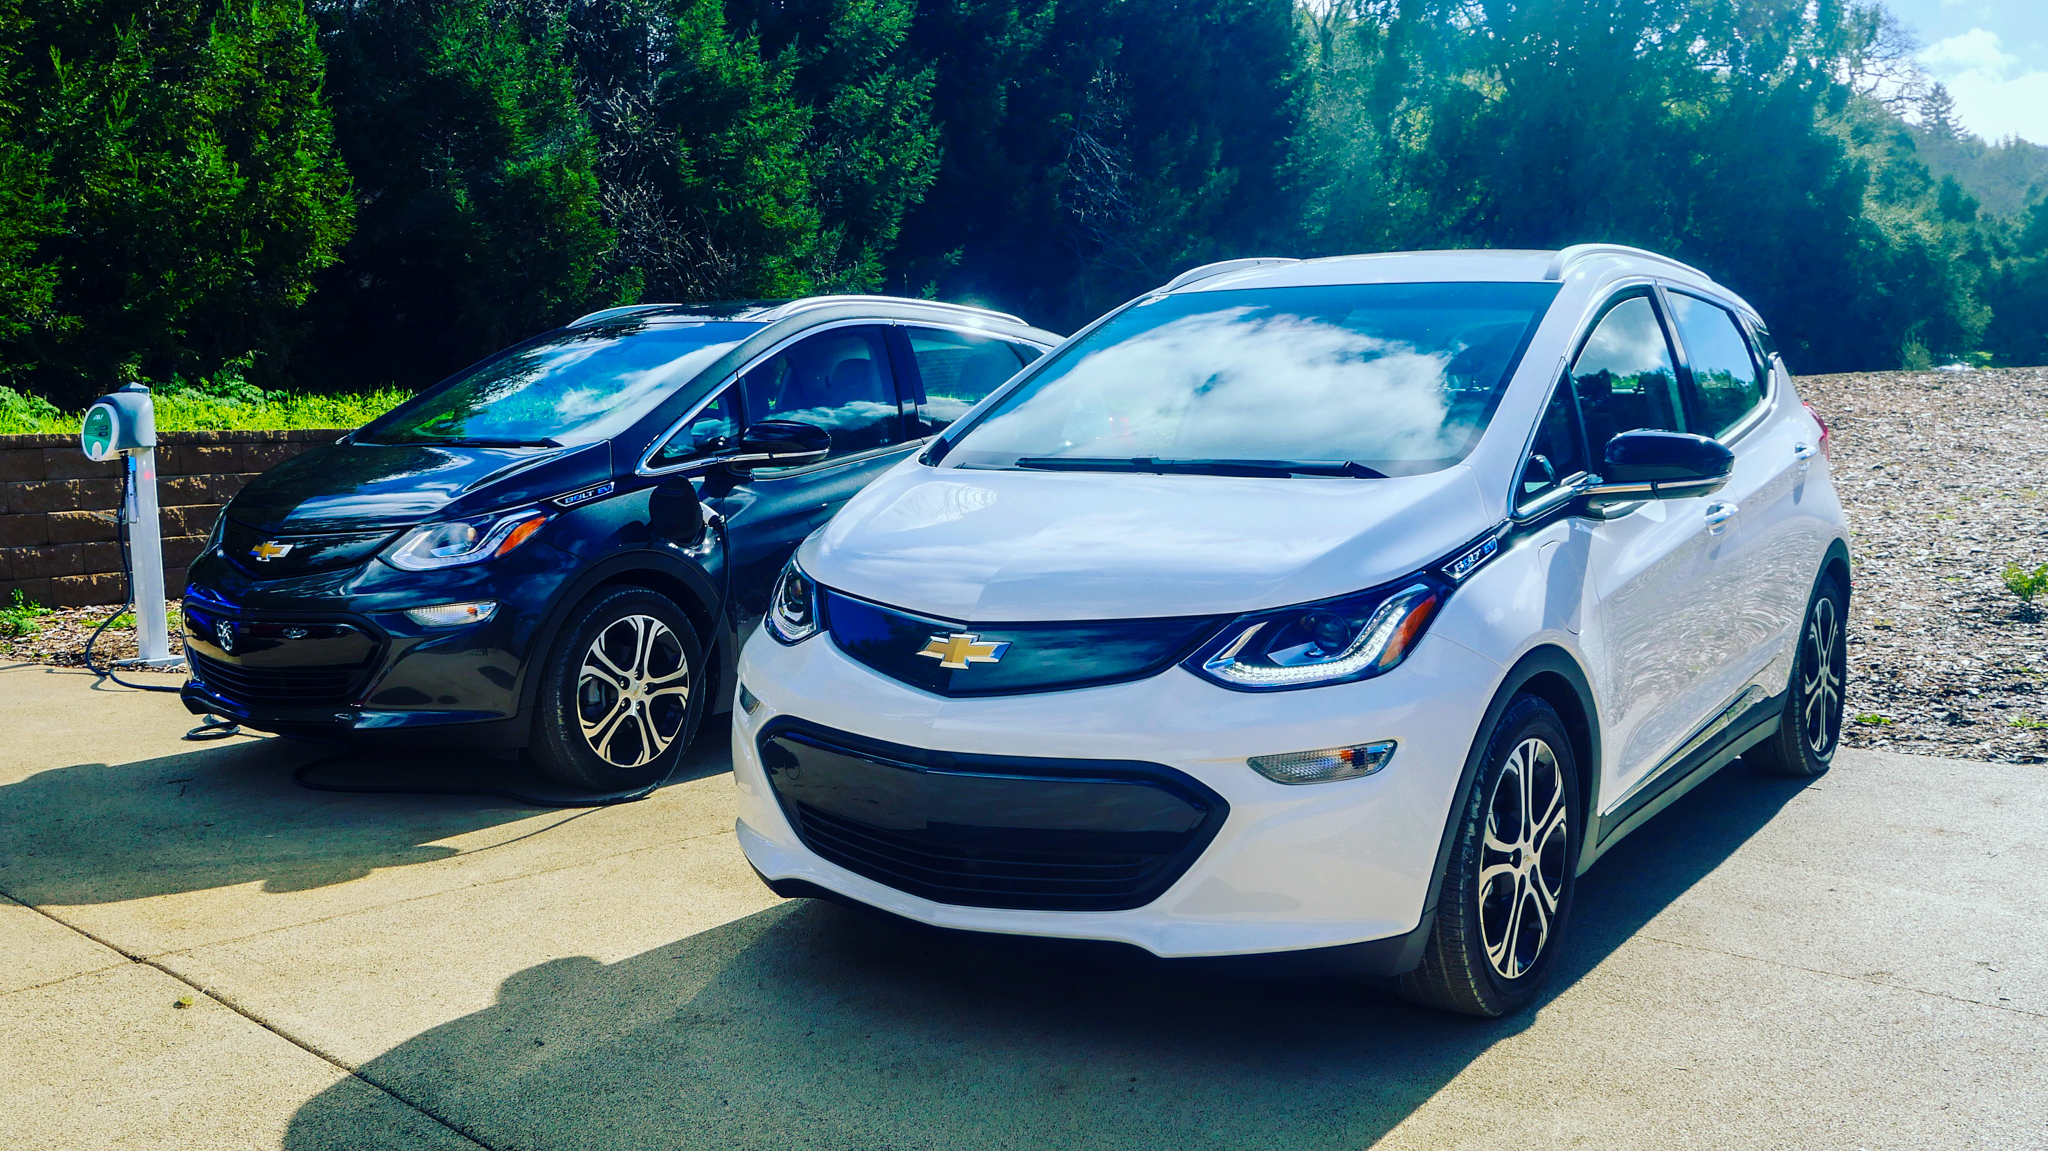 On Wednesday Said That General Motors Sold Its 200 000th Electric Vehicle Ev In Q4 2018 Triggering A 15 Month Phaseout Of The Federal Tax Credit